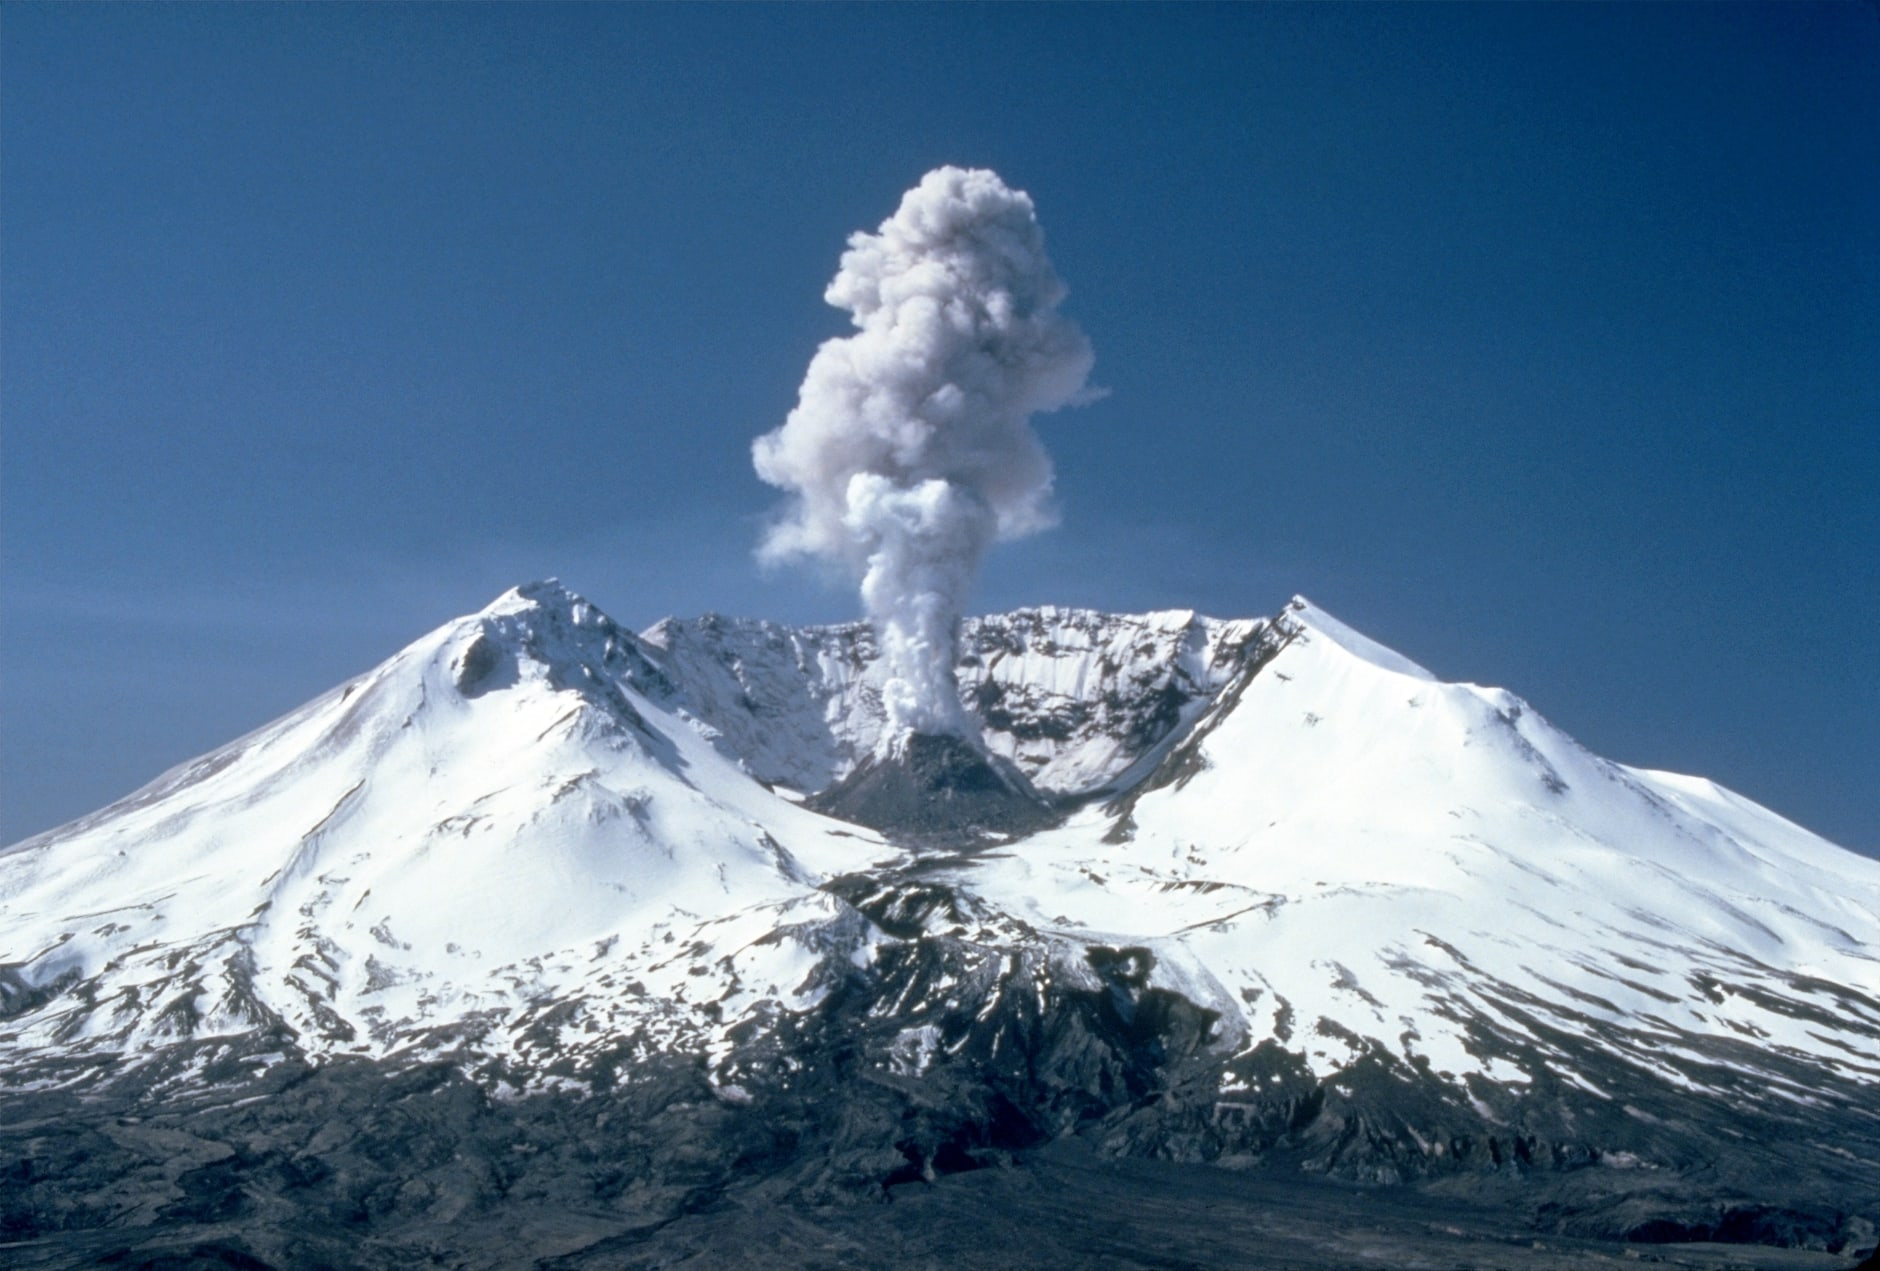 Mount St. Helens with a plume of smoke